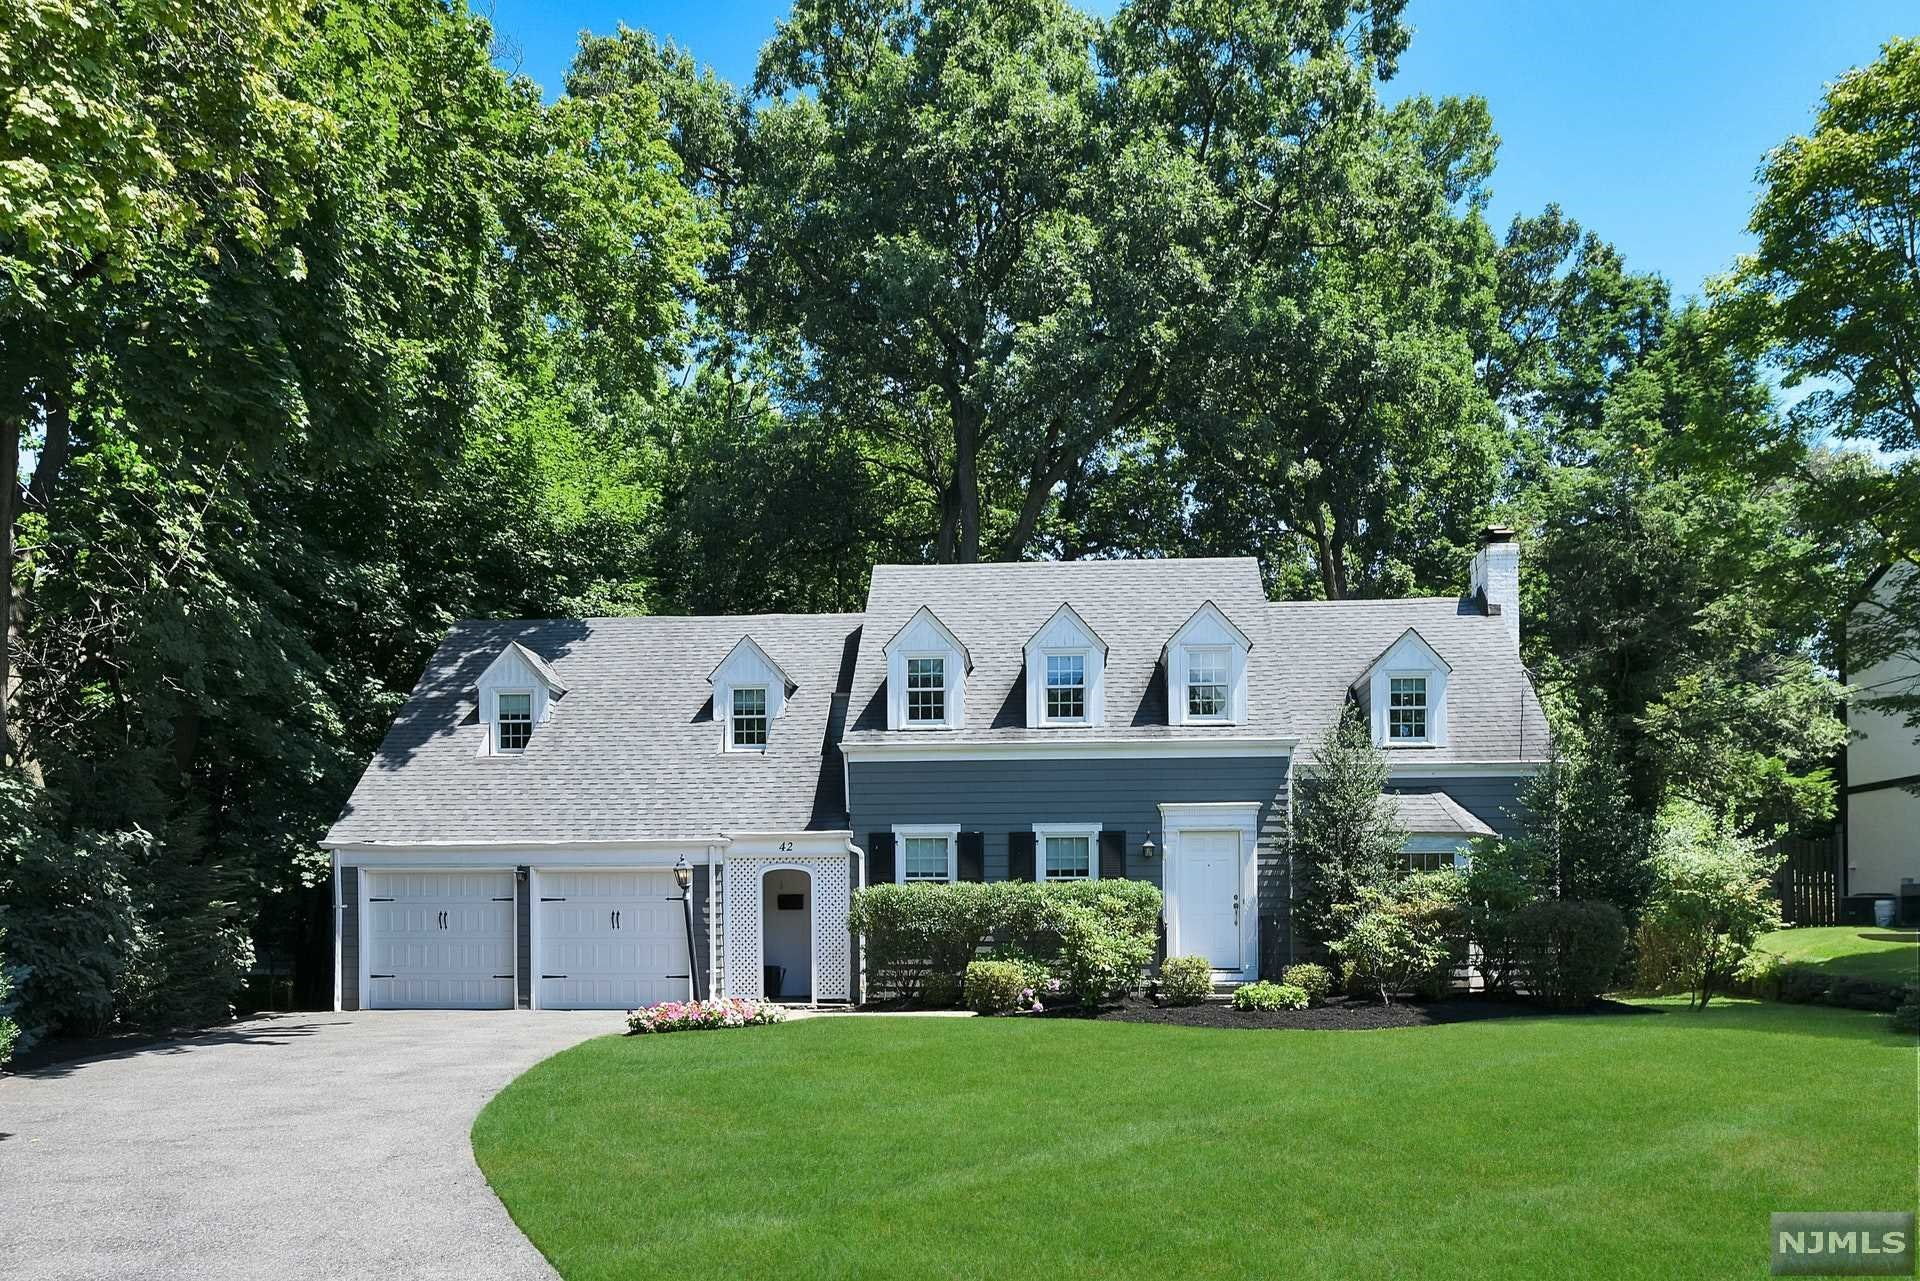 42 Kenwood Road A Luxury Home For Sale In Tenafly Bergen County New Jersey Property Id 20028510 Christie S International Real Estate